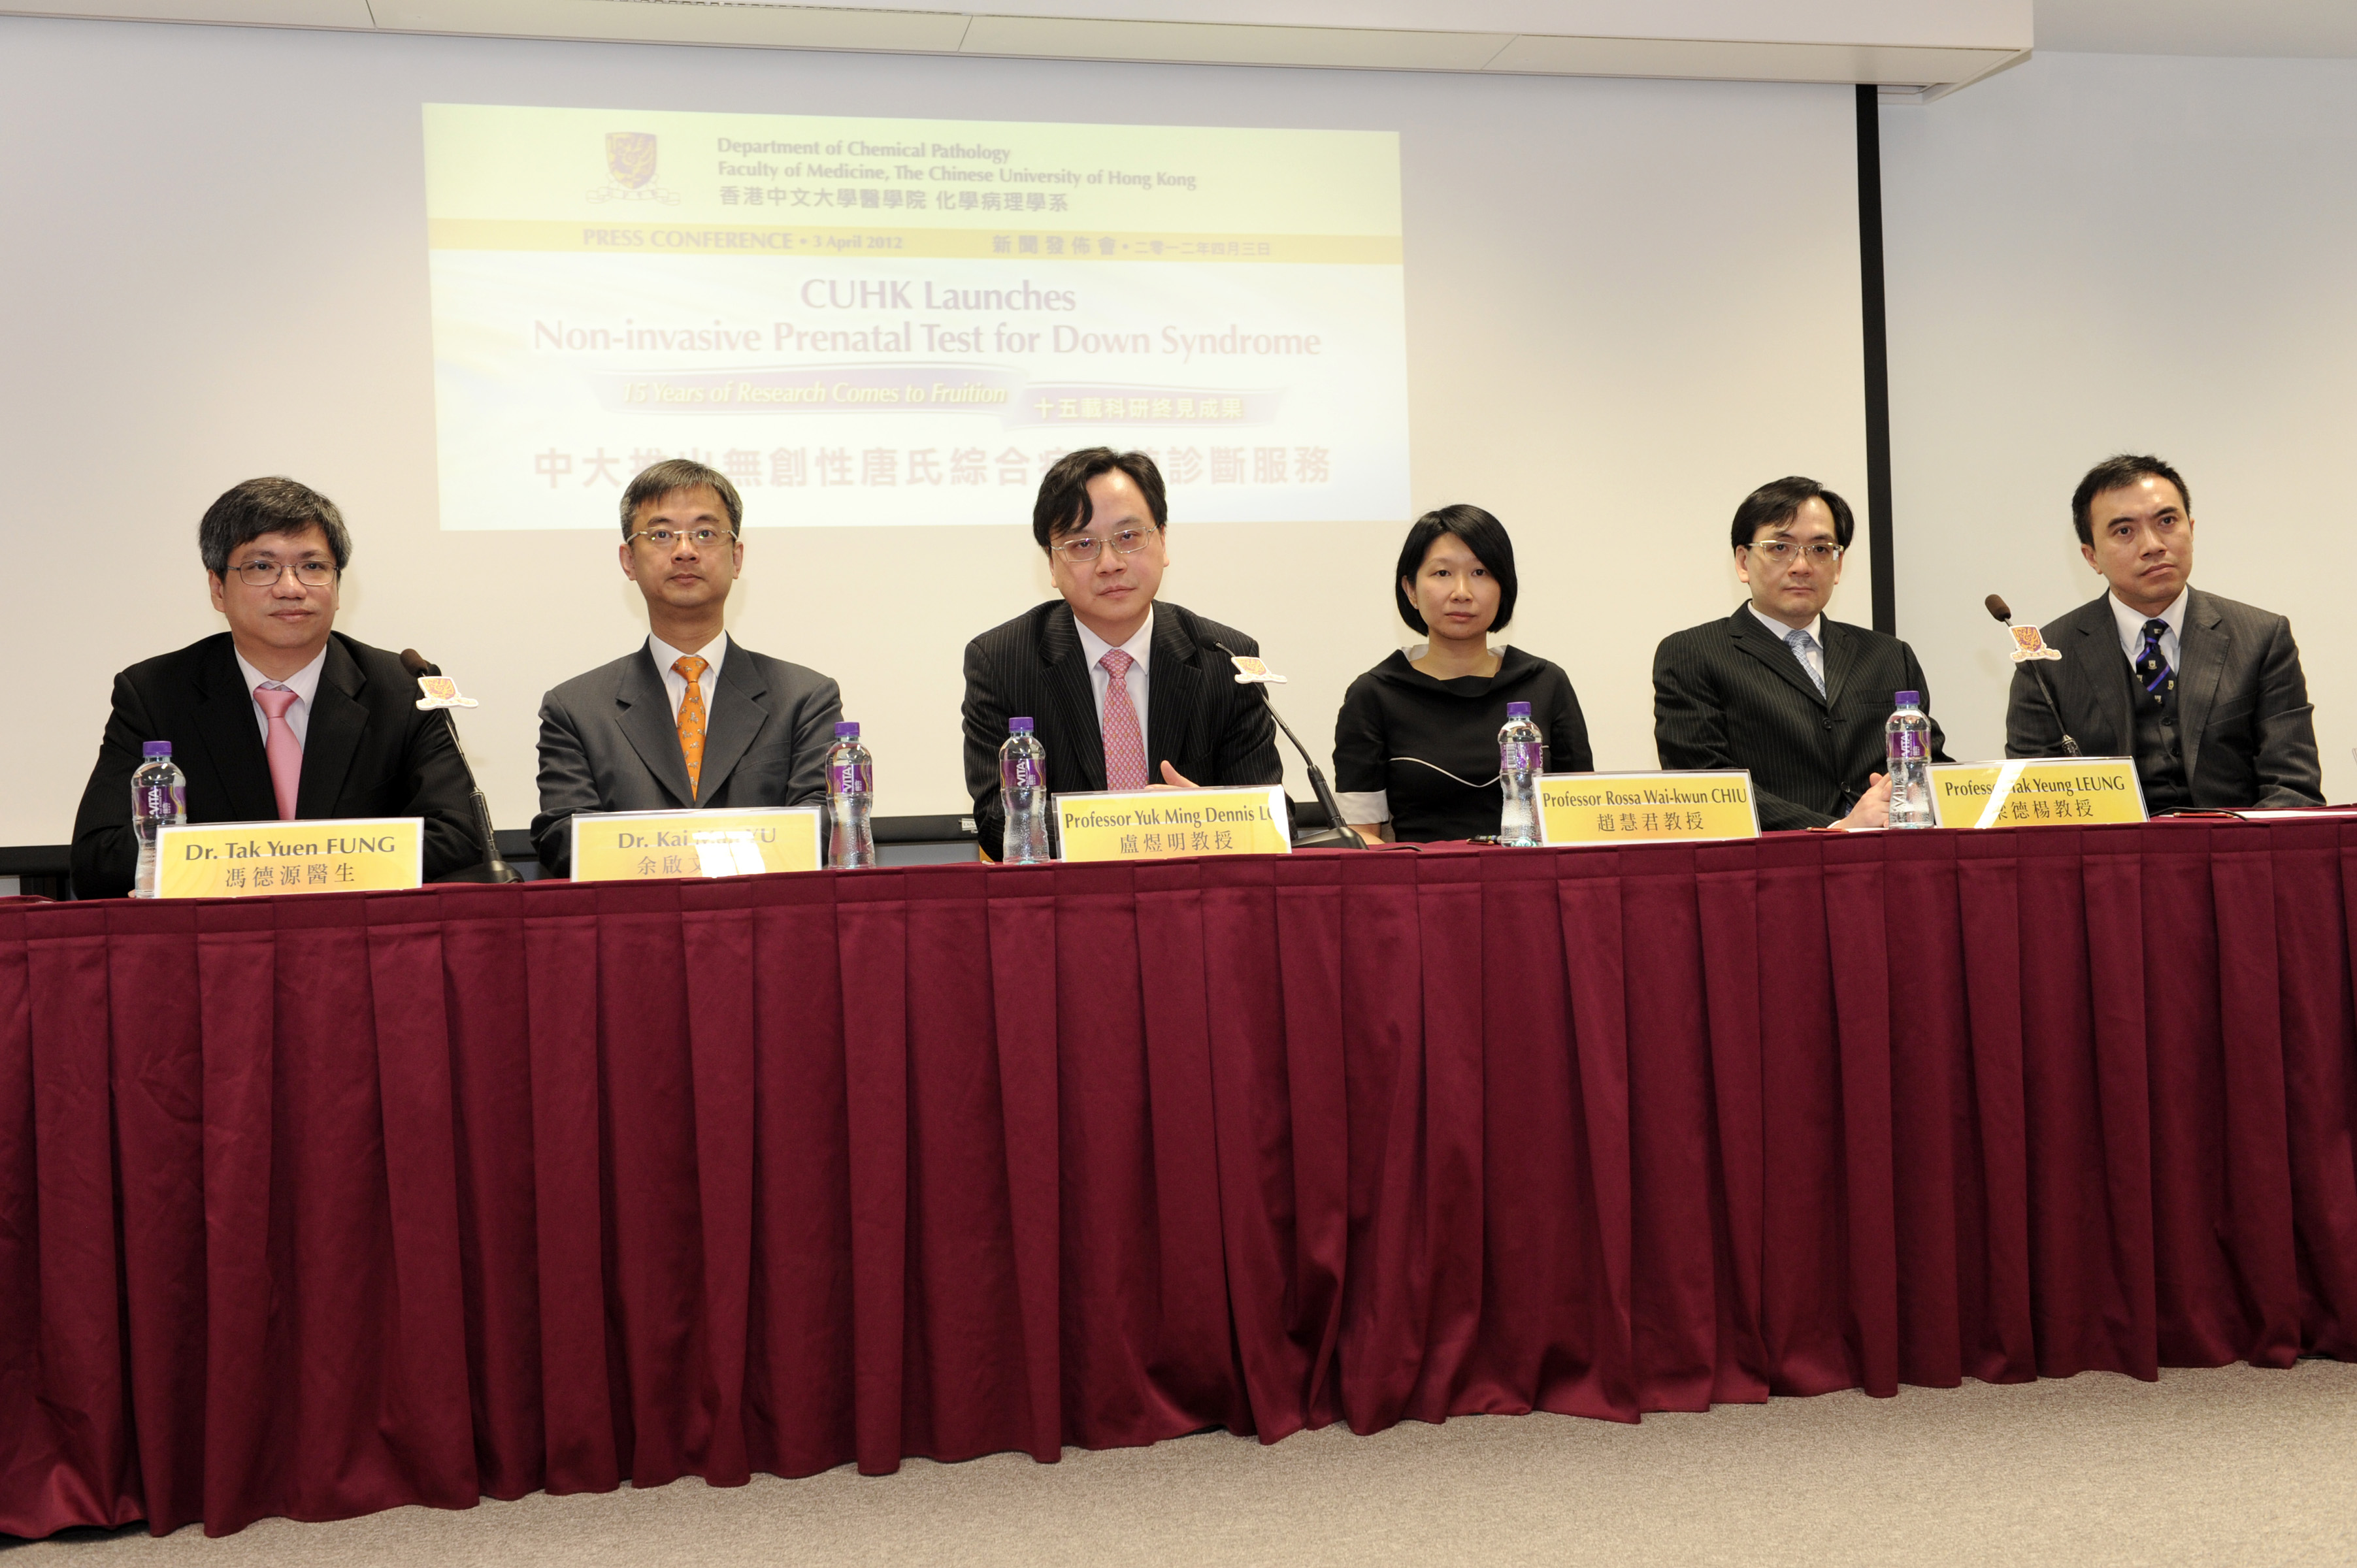 (From left) Dr. Fung Tak-yuen, Chief of Service, Obstetrics and Gynaecology, Hong Kong Baptist Hospital; Dr. Yu Kai-man, Head of Obstetrics and Gynaecology Department, Union Hospital; Prof. Lo Yuk-ming Dennis, Li Ka Shing Professor of Medicine and Chairman of Department of Chemical Pathology, CUHK; Prof. Chiu Wai-kwan Rossa, Professor, Department of Chemical Pathology, CUHK; Prof. Leung Tak-yeung, Professor, Department of Obstetrics and Gynaecology, CUHK; and Dr. Leung Tse-ngong Danny, Director, Maternal and Fetal Medicine, Hong Kong Sanatorium and Hospital